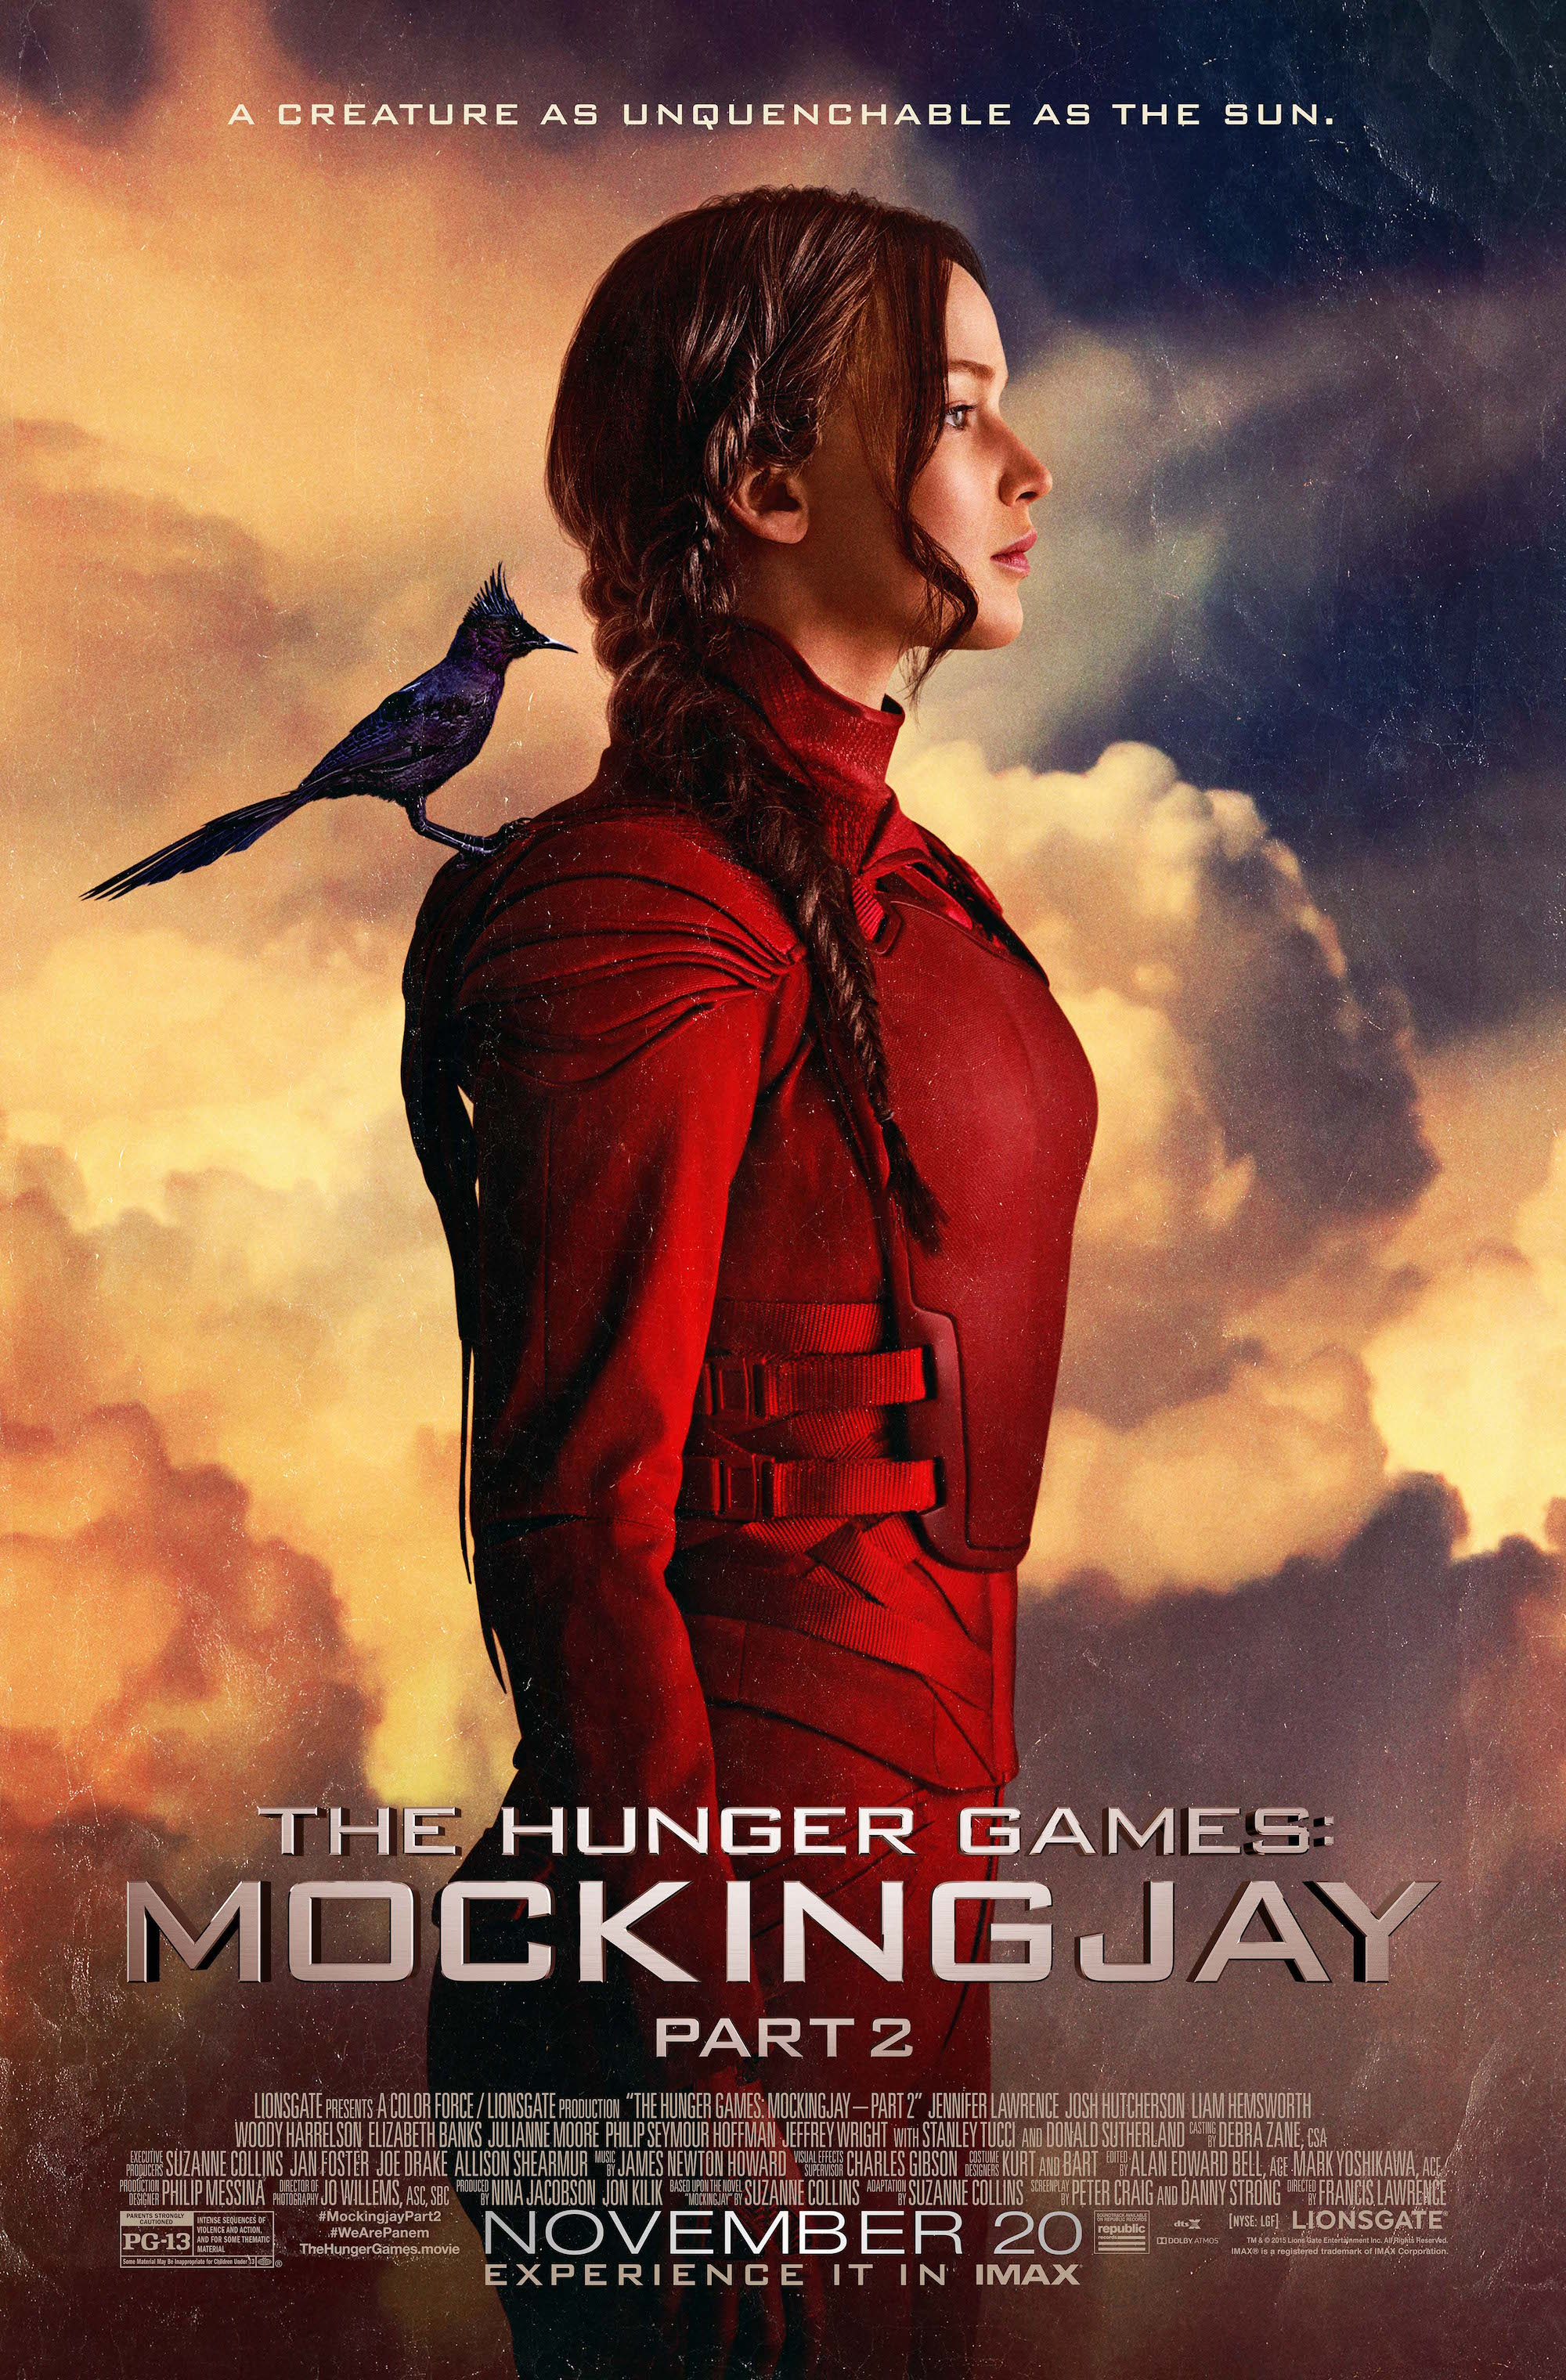 The Hunger Games: Mockingjay - Part 2 - Movie info and